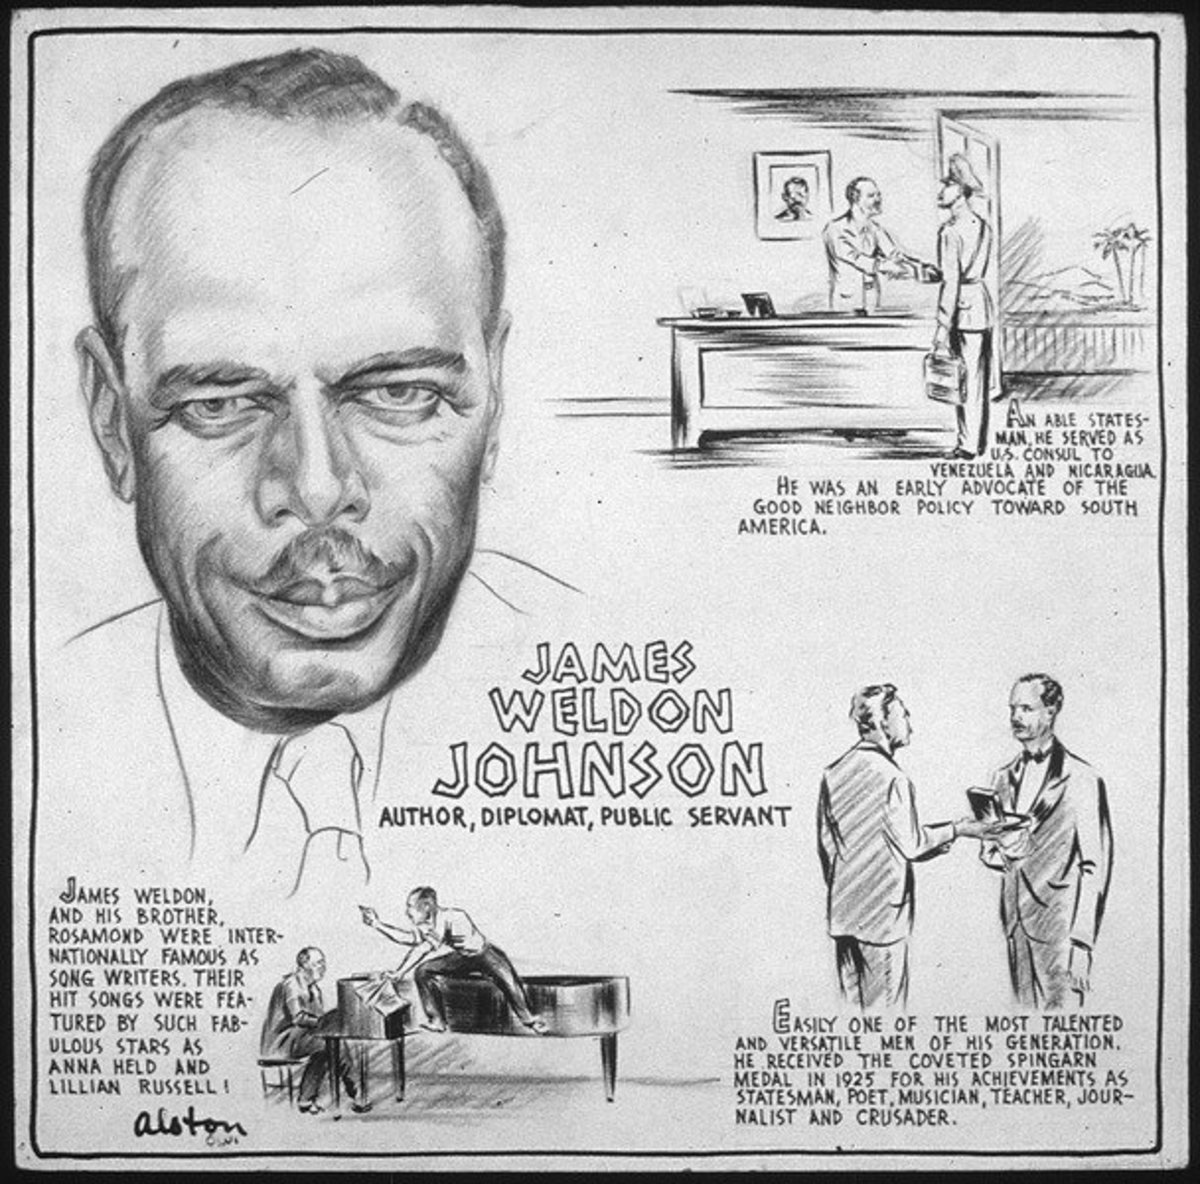 The life of James Weldon Johnson depicted with sketches and biographical paragraphs. By artist Charles Henry Alston. Current location of work is the National Archives and Records Administration, College Park, MD.